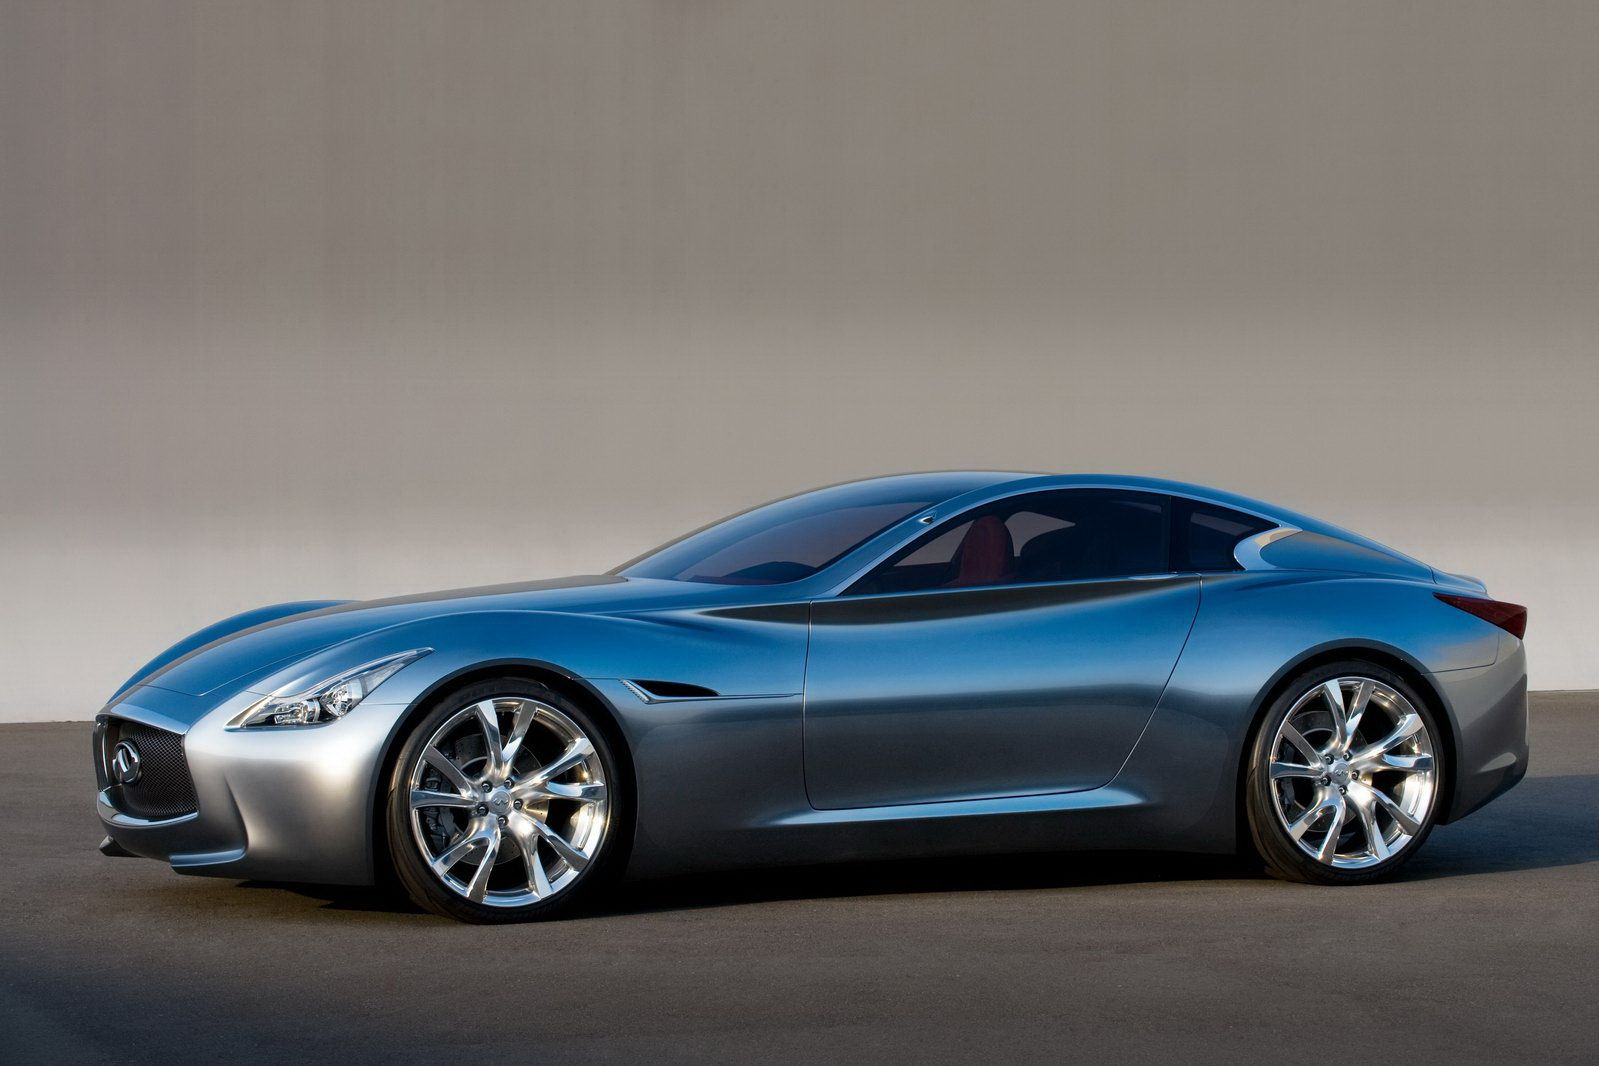 2018 Infiniti Sports Car Price Release Date Anese Vehicle Producer Builds Up A Brand New Product That Is Aned To Come As